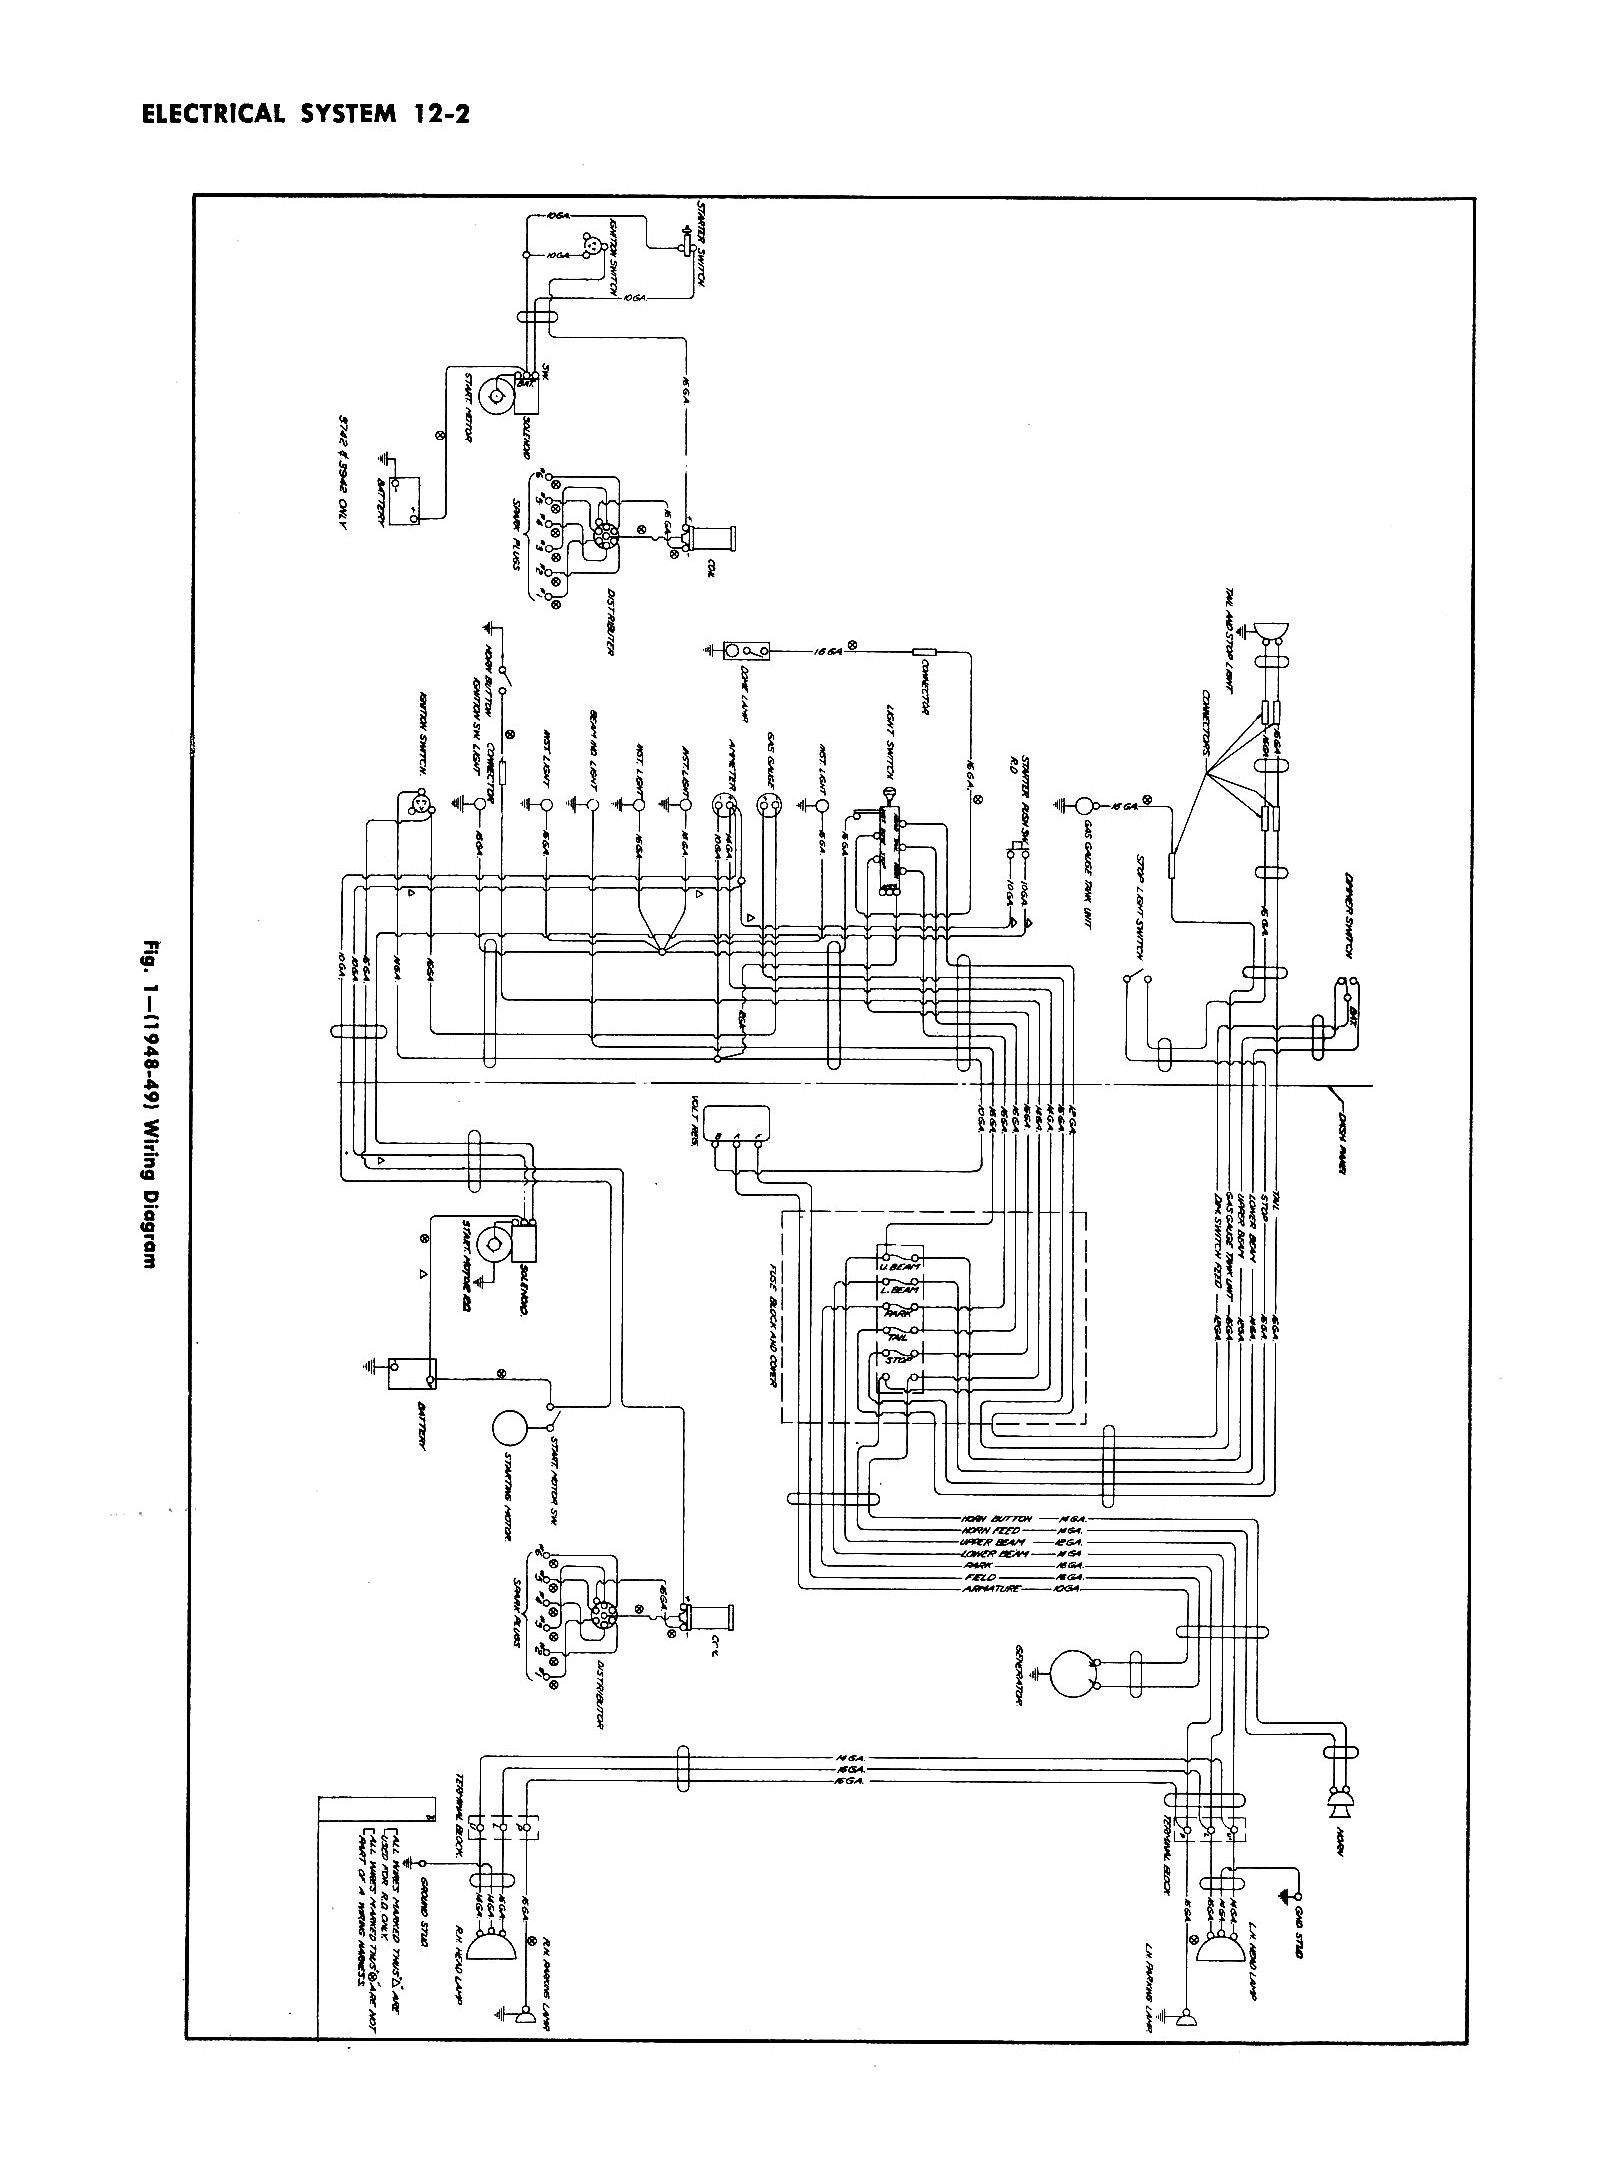 chevy wiring diagrams rh chevy oldcarmanualproject com 1975 Chevy Truck  Wiring Diagram 1946 Chevy Truck Wiring Diagram